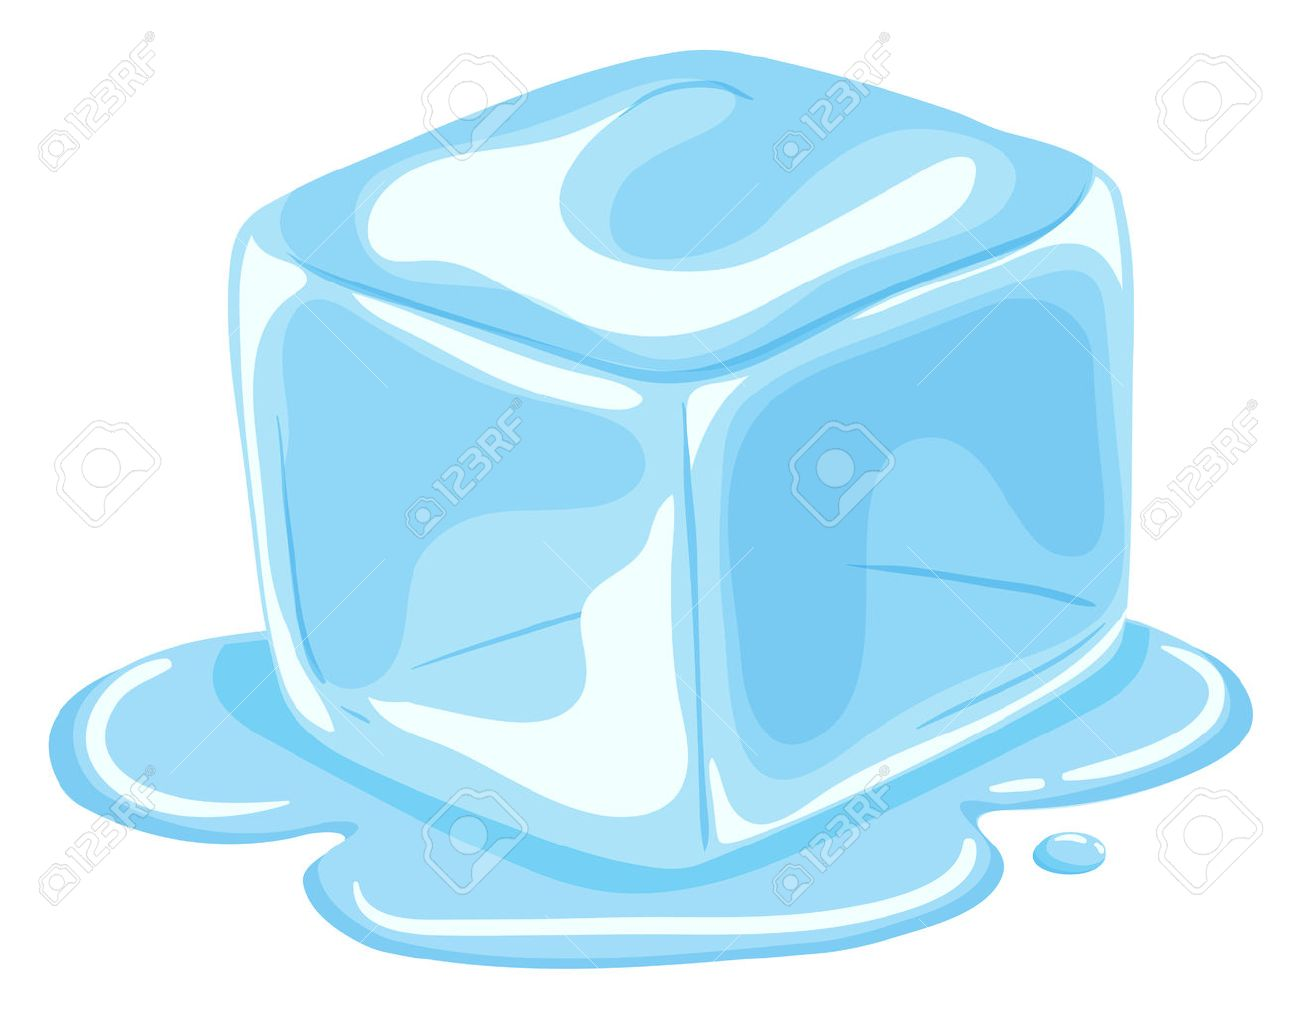 piece of ice cube melting illustration royalty free cliparts rh 123rf com cartoon ice cube clip art ice cube clip art black and white